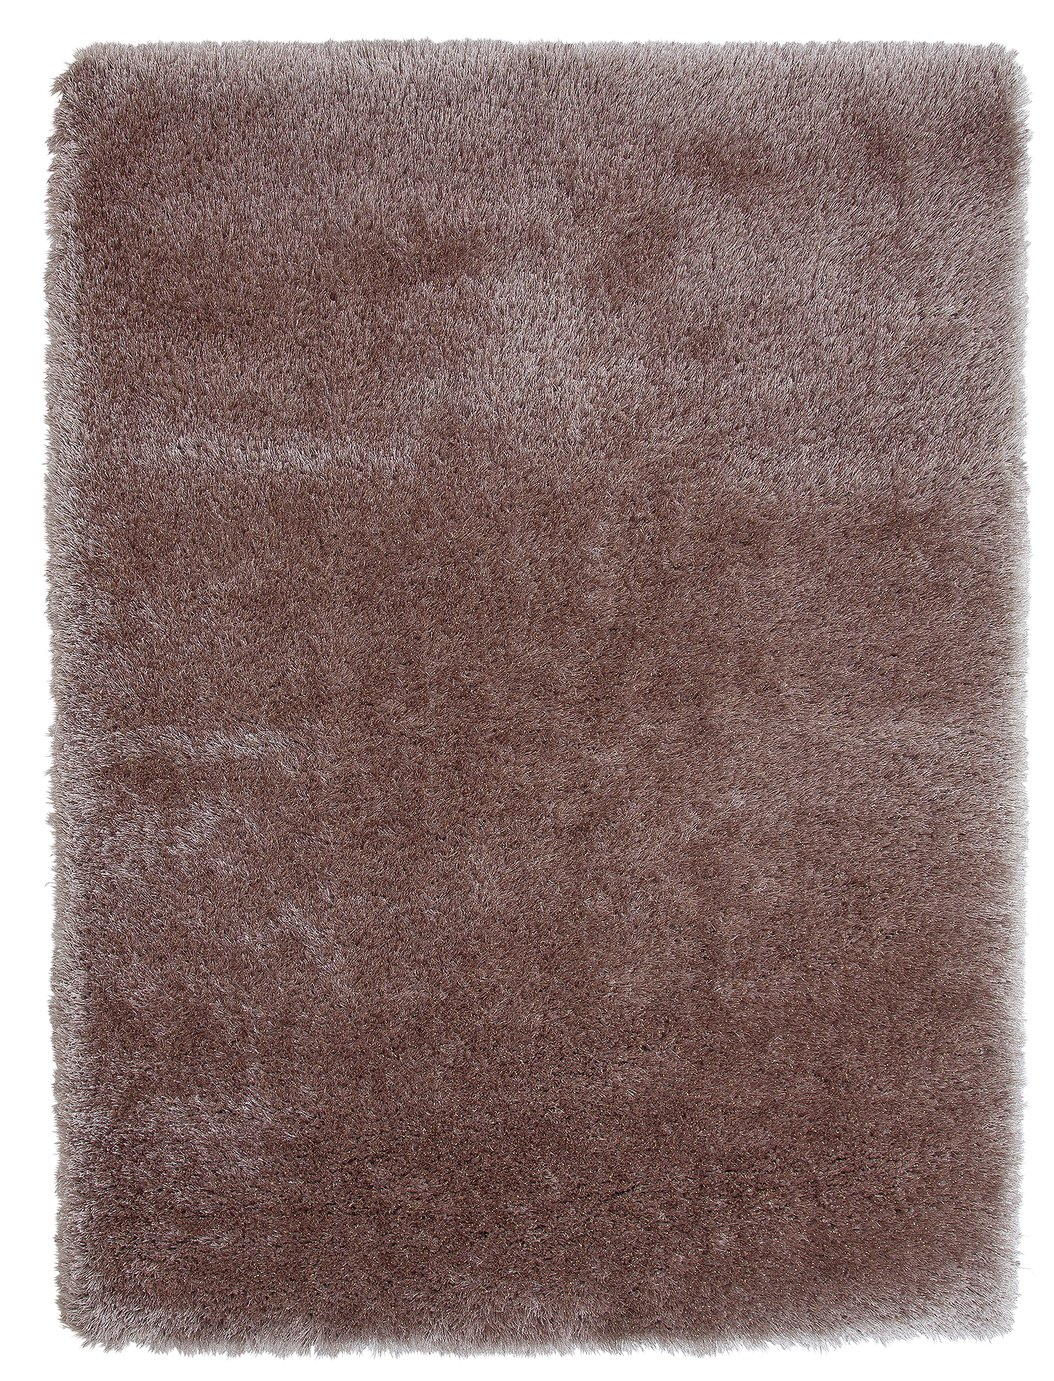 Argos Home Lurex Shaggy Rug